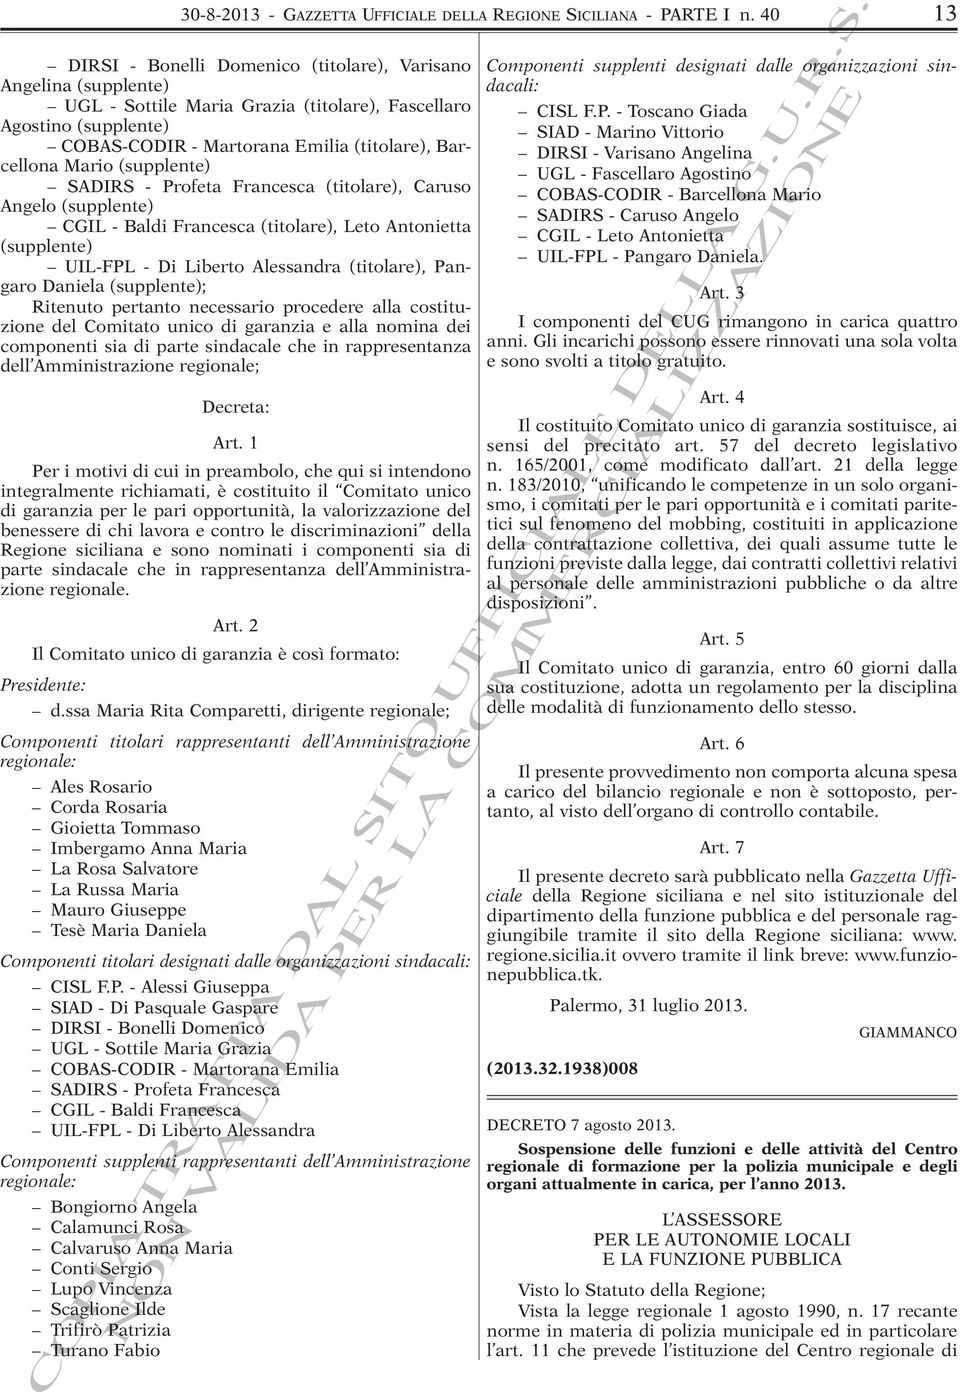 Della Regione Siciliana Pdf Free Download